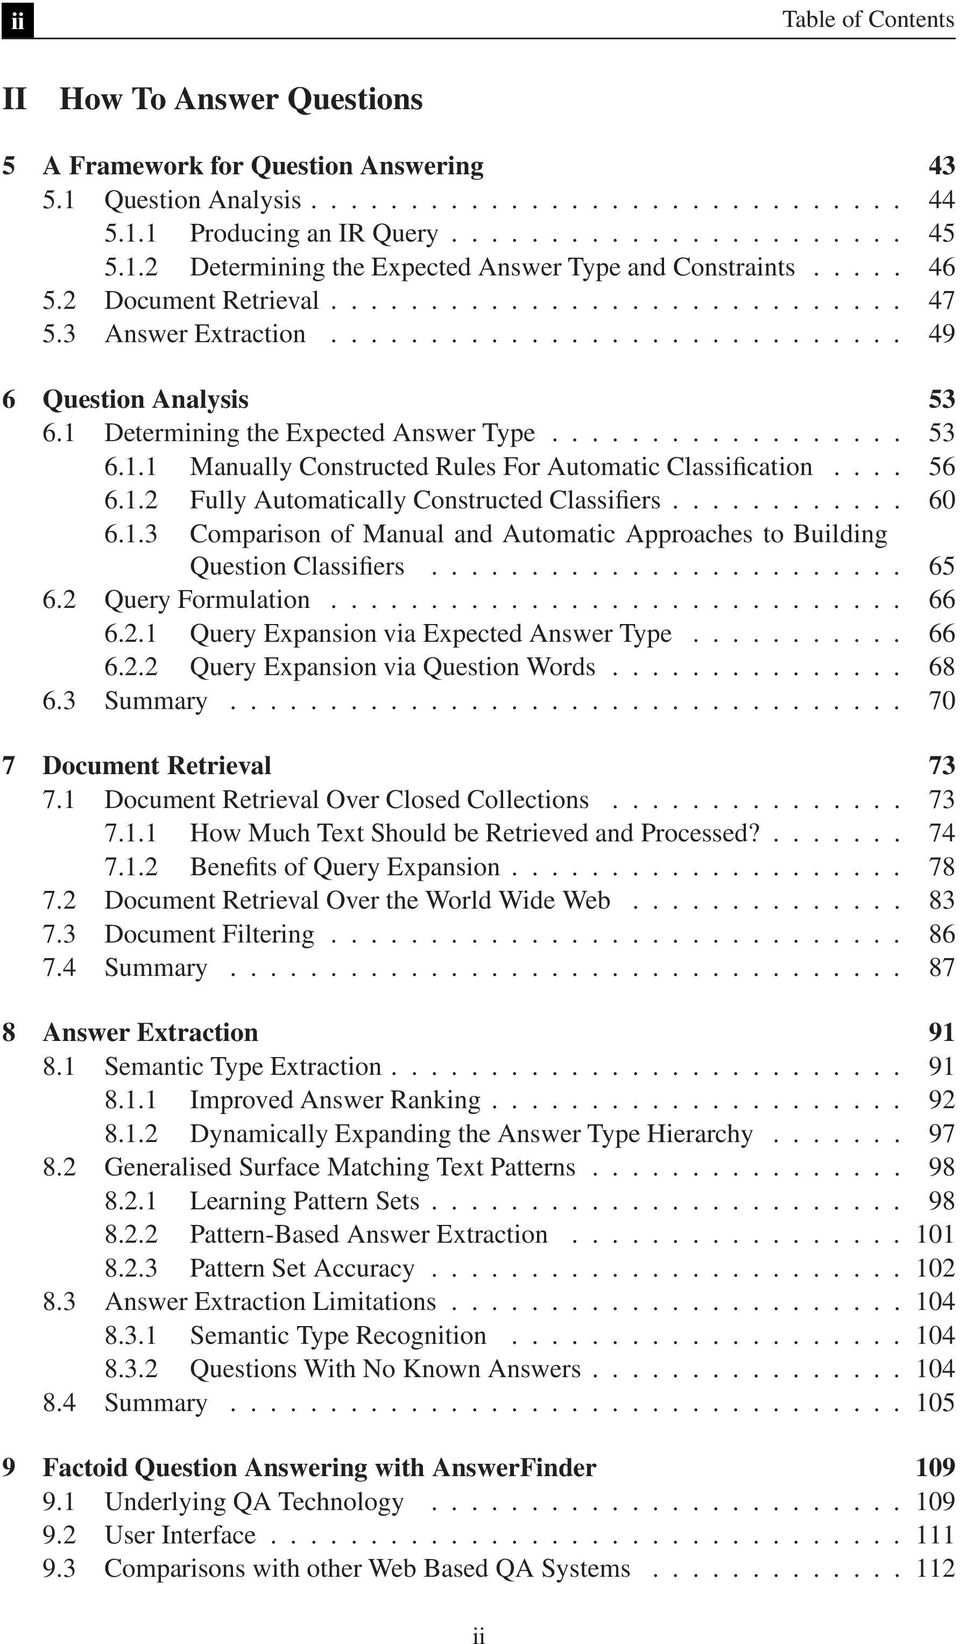 1 Determining the Expected Answer Type.................. 53 6.1.1 Manually Constructed Rules For Automatic Classification.... 56 6.1.2 Fully Automatically Constructed Classifiers............ 60 6.1.3 Comparison of Manual and Automatic Approaches to Building Question Classifiers.